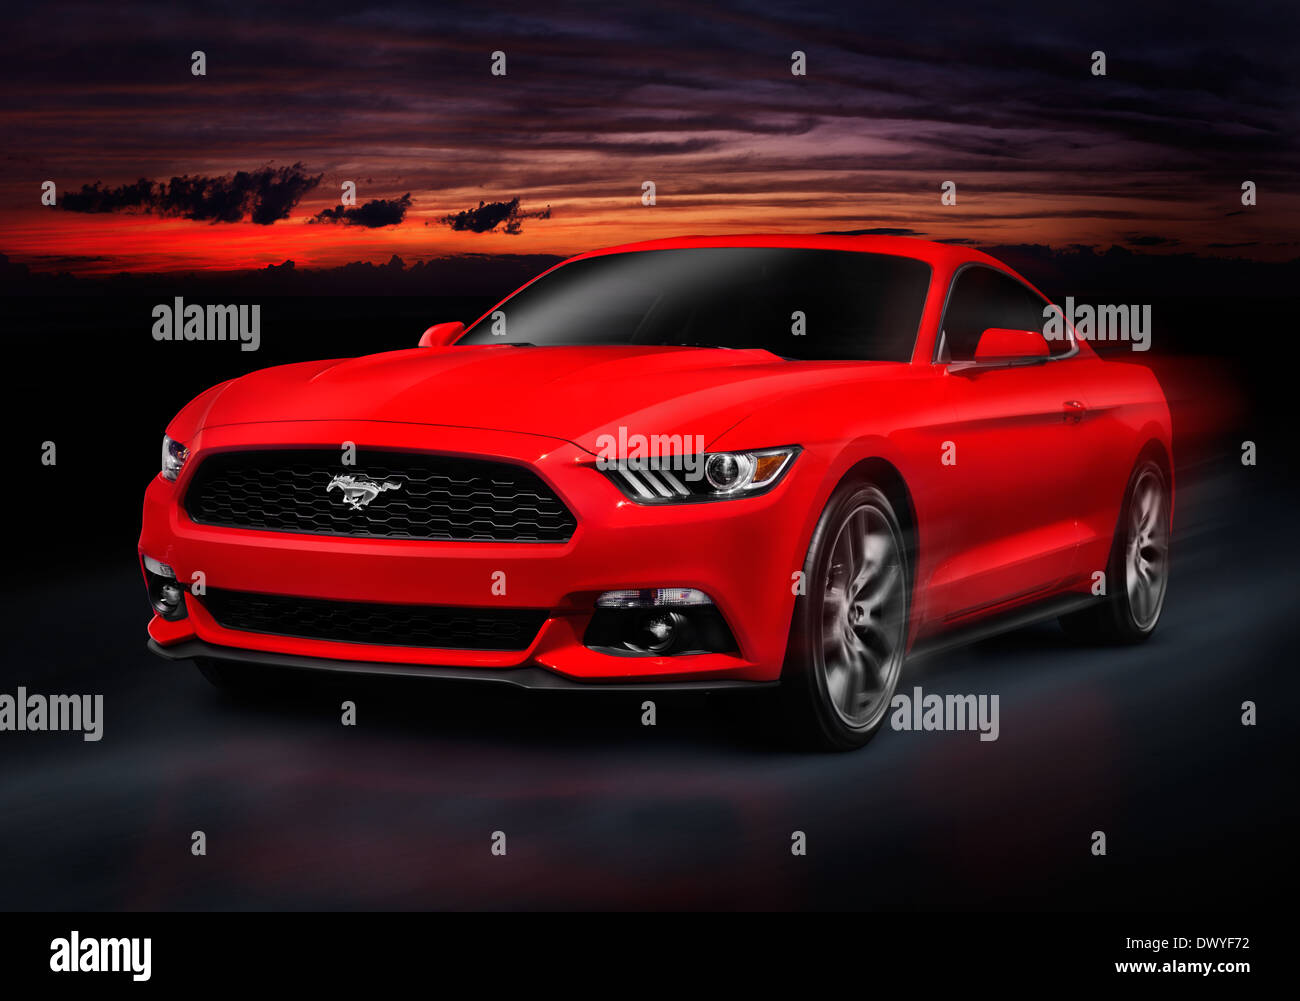 Red 2015 Ford Mustang sports car racing on a road at night - Stock Image